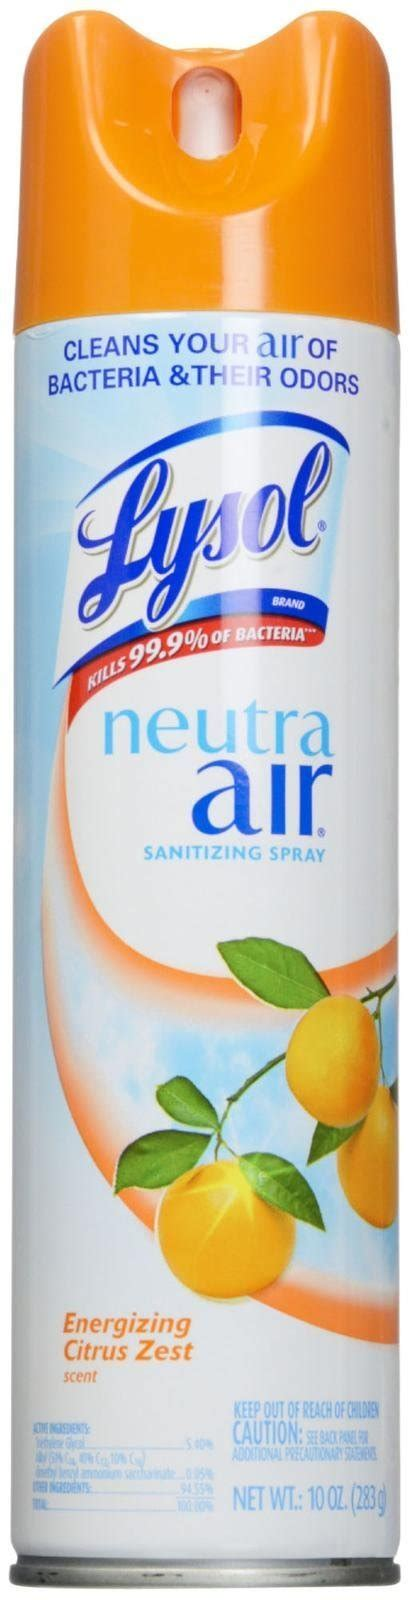 Amazon.com: Lysol Neutra Air Sanitizing Spray Air